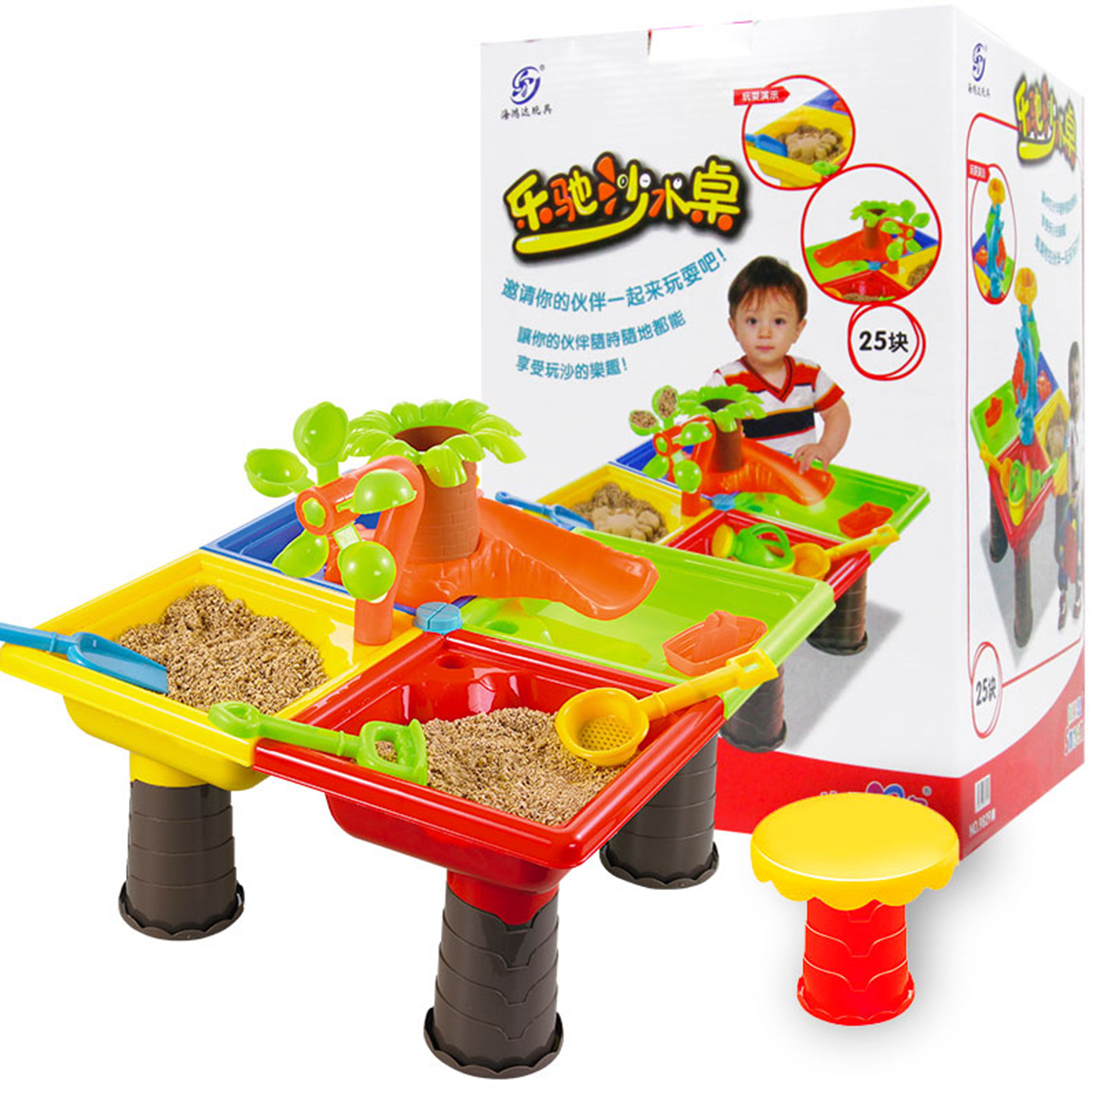 24Pcs Kids Plastic Sand Pit Set Beach Sand Table Water Play Toy Summer Outdoor Toys For Baby Children - Color Random